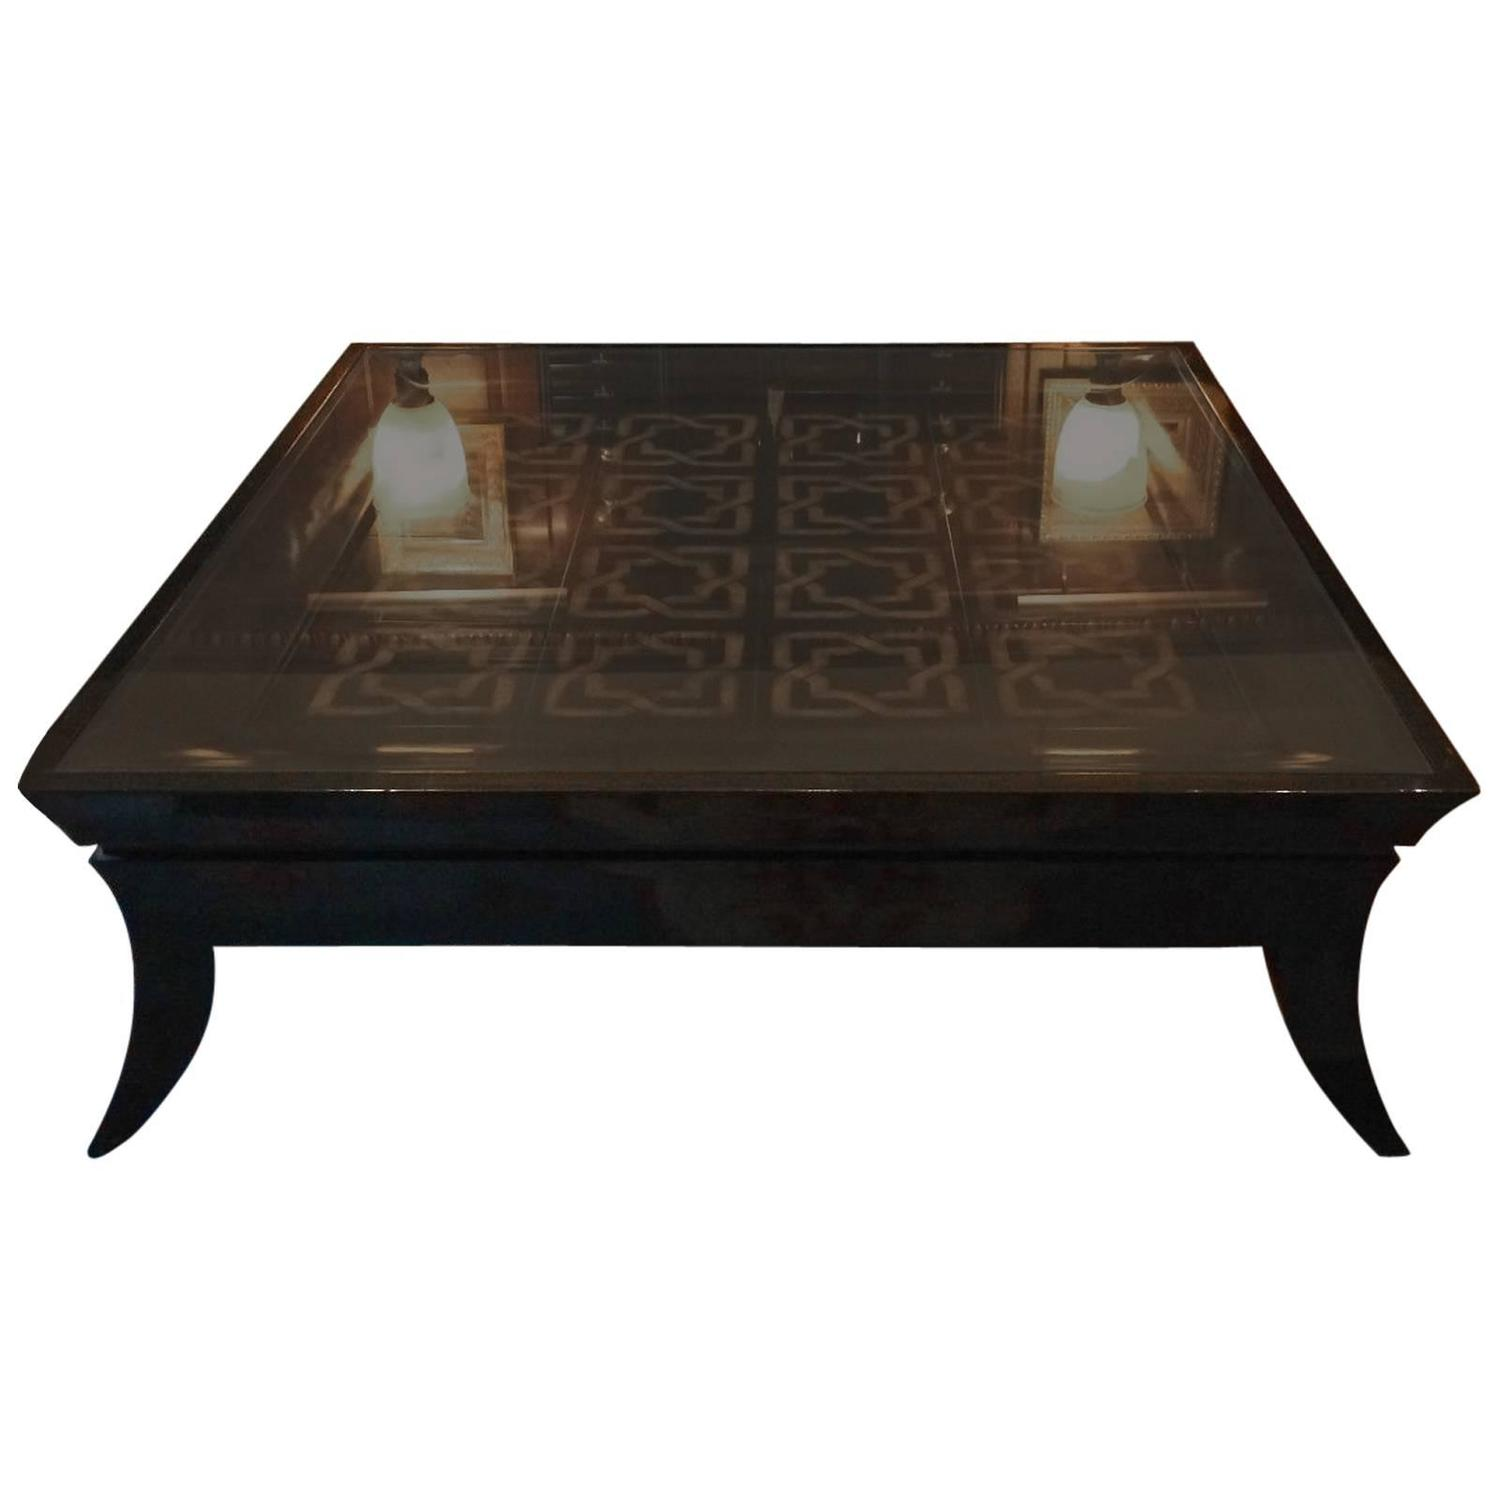 large coffee table glass topped tiled modern at 1stdibs With oversized glass coffee table